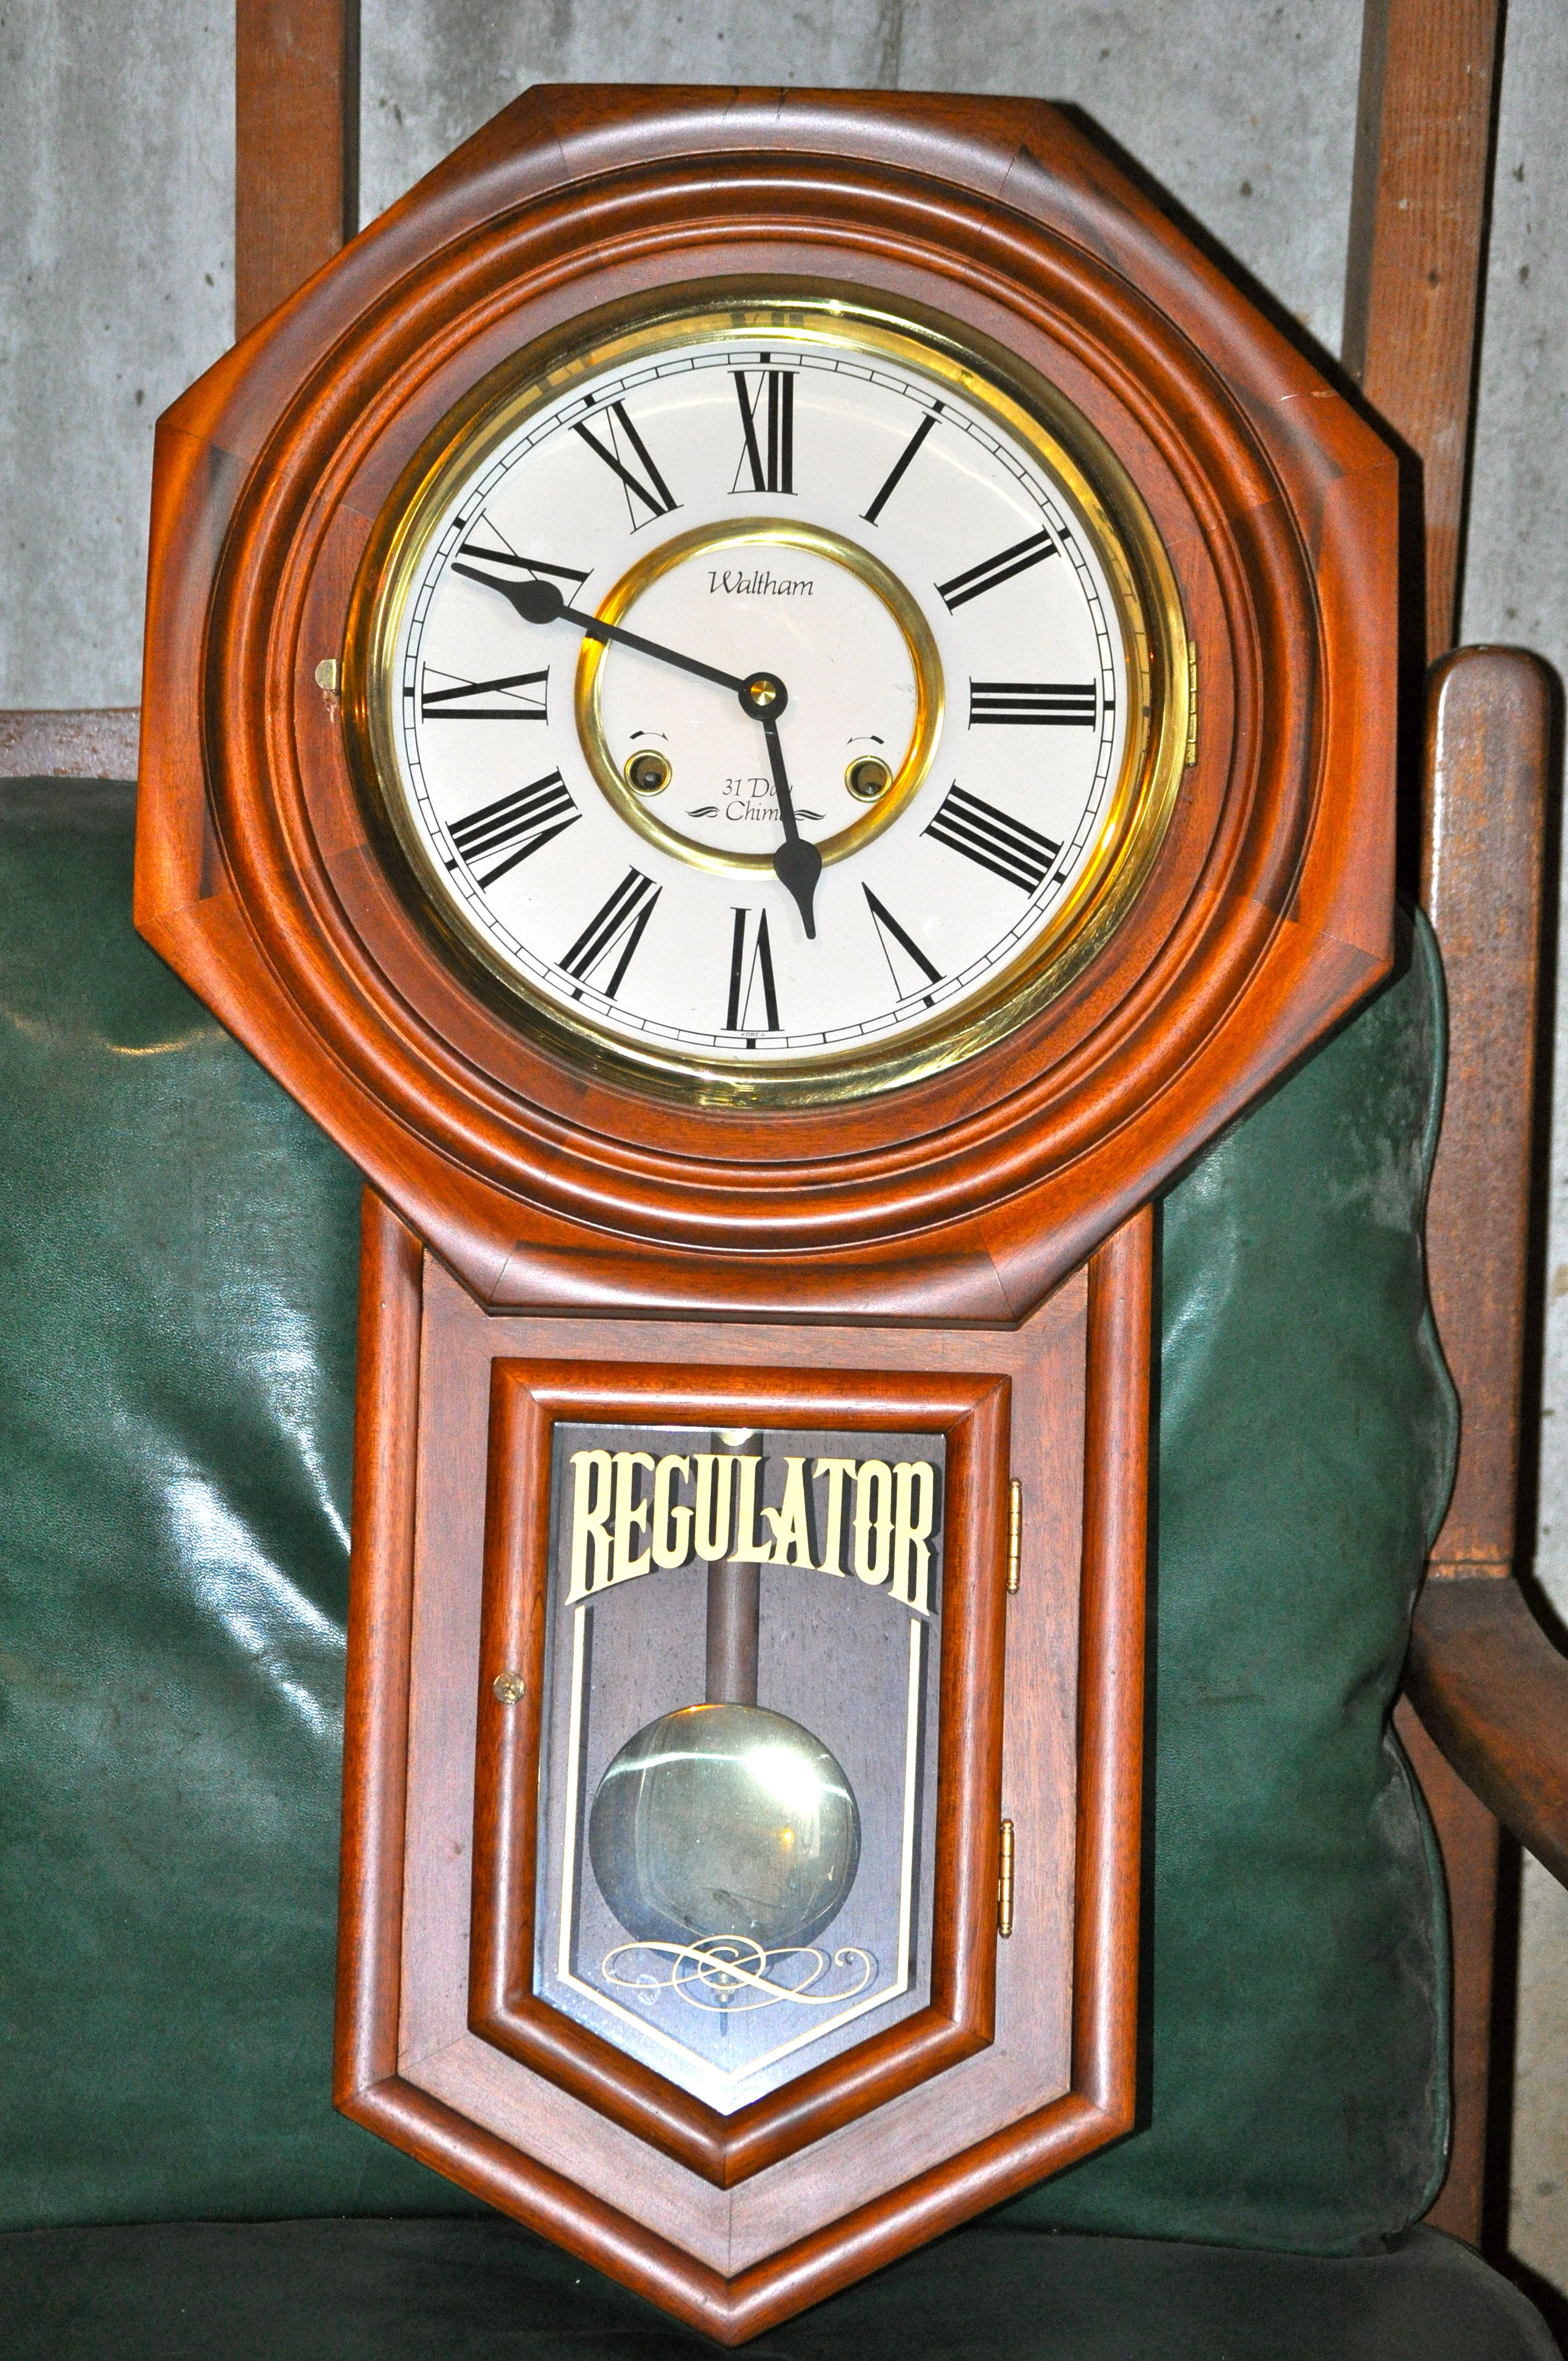 Vintage 31 Day Tall Waltham Chime Regulator Wall Clock In 31 Day Run And Strike The Clock Runs Keeps Time An Antique Wall Clock Antique Clocks Wall Clock